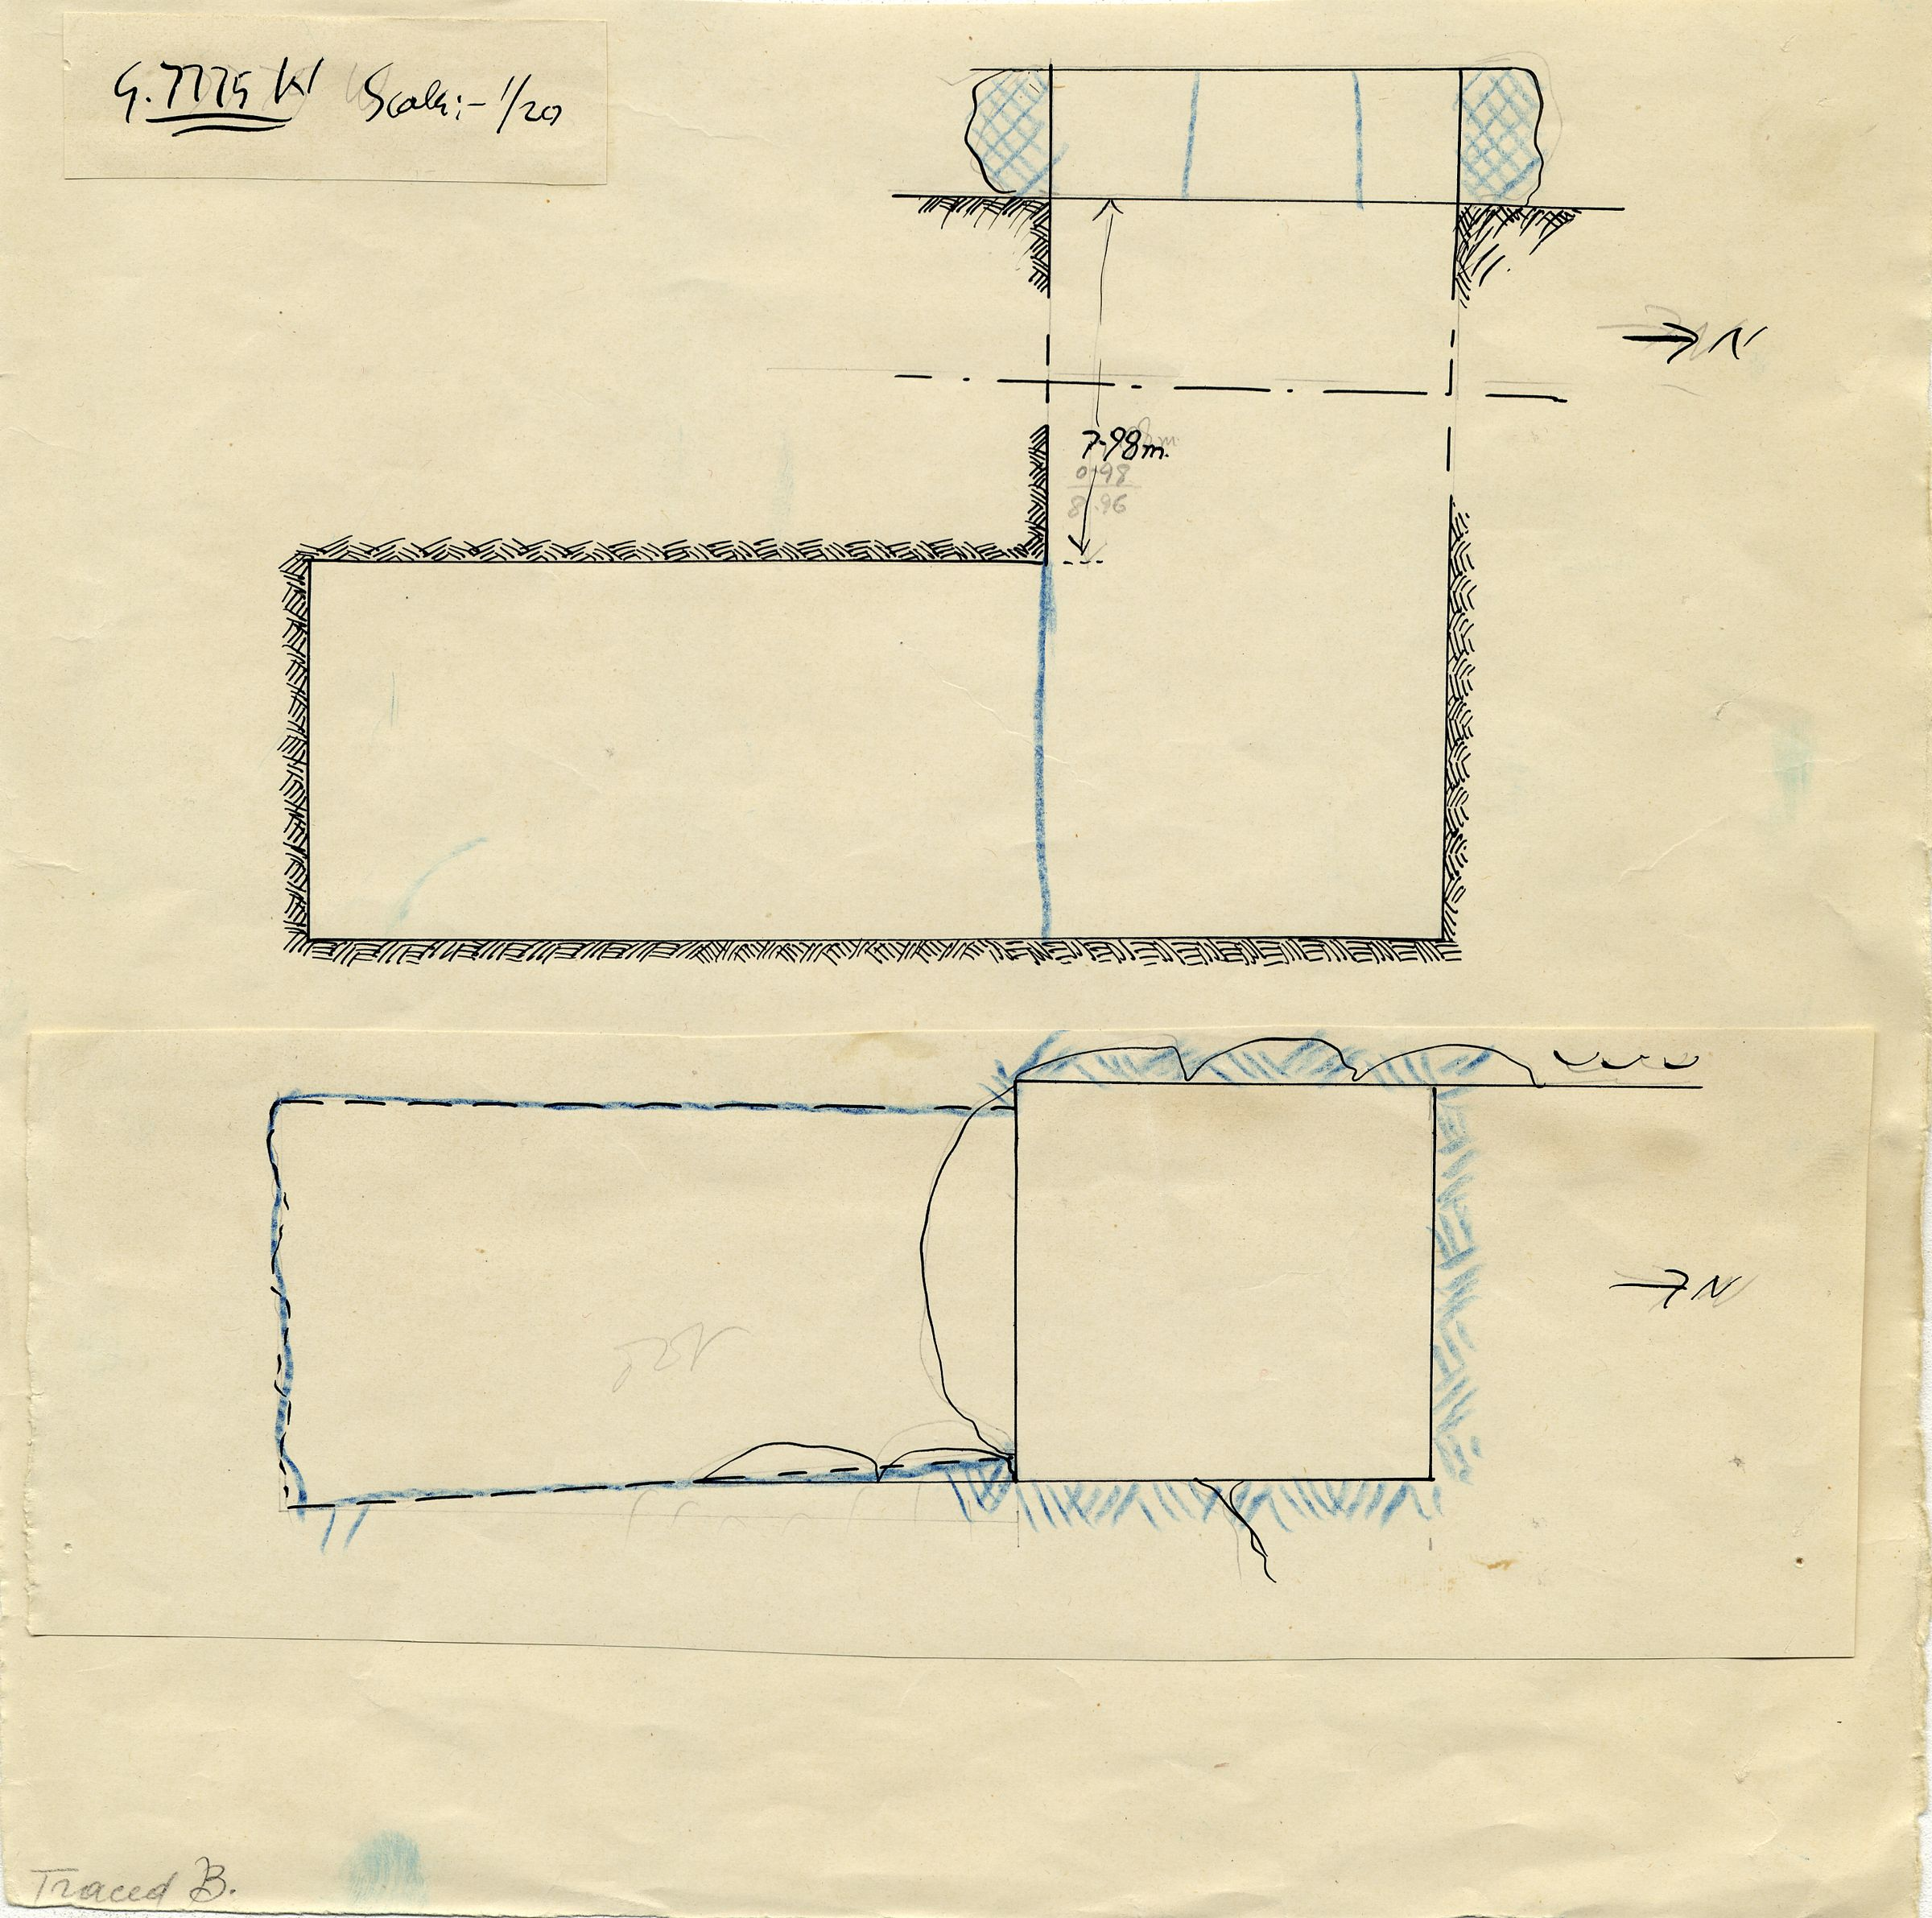 Maps and plans: G 7775, Shaft W